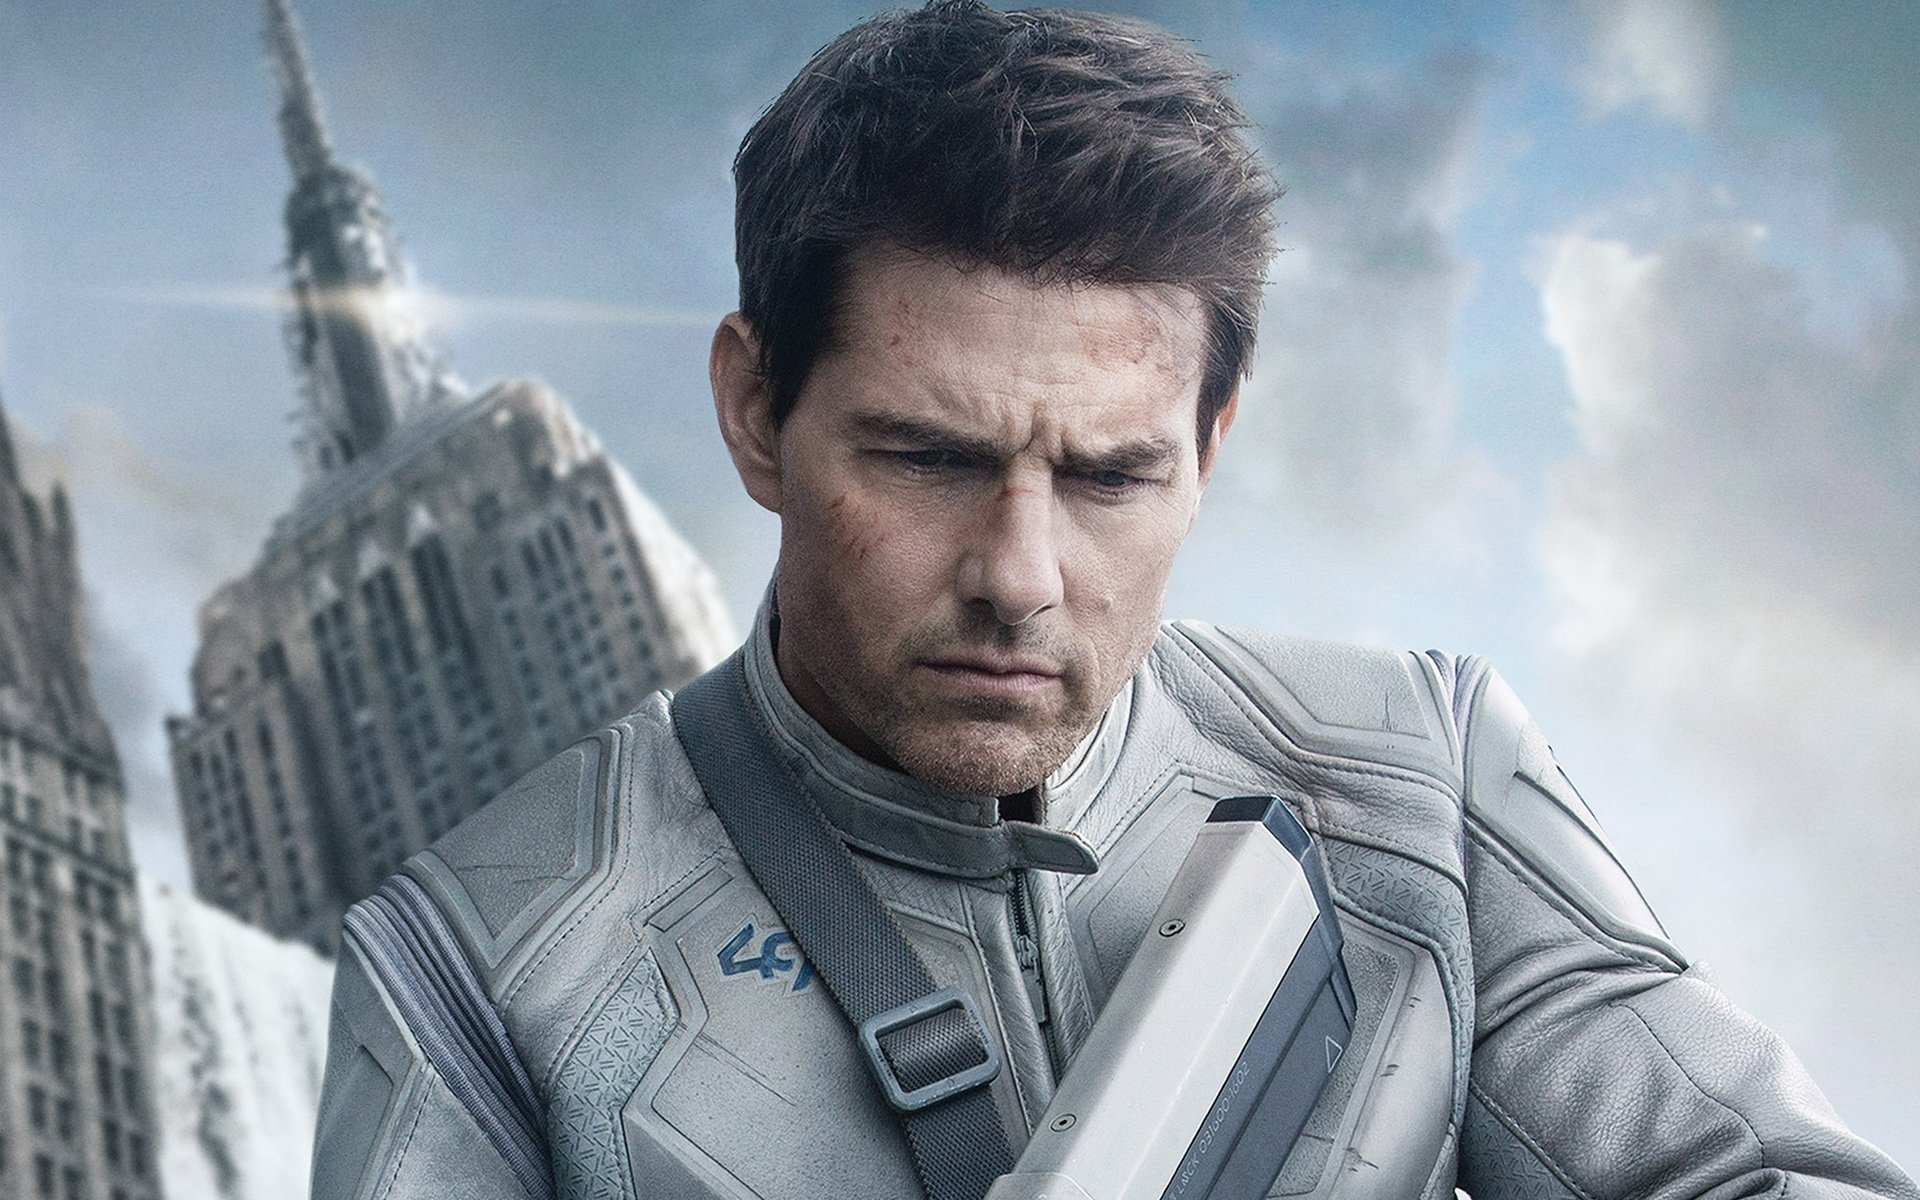 Wallpaper Tom Cruise in Oblivion 1920x1200 HD Picture Image 1920x1200